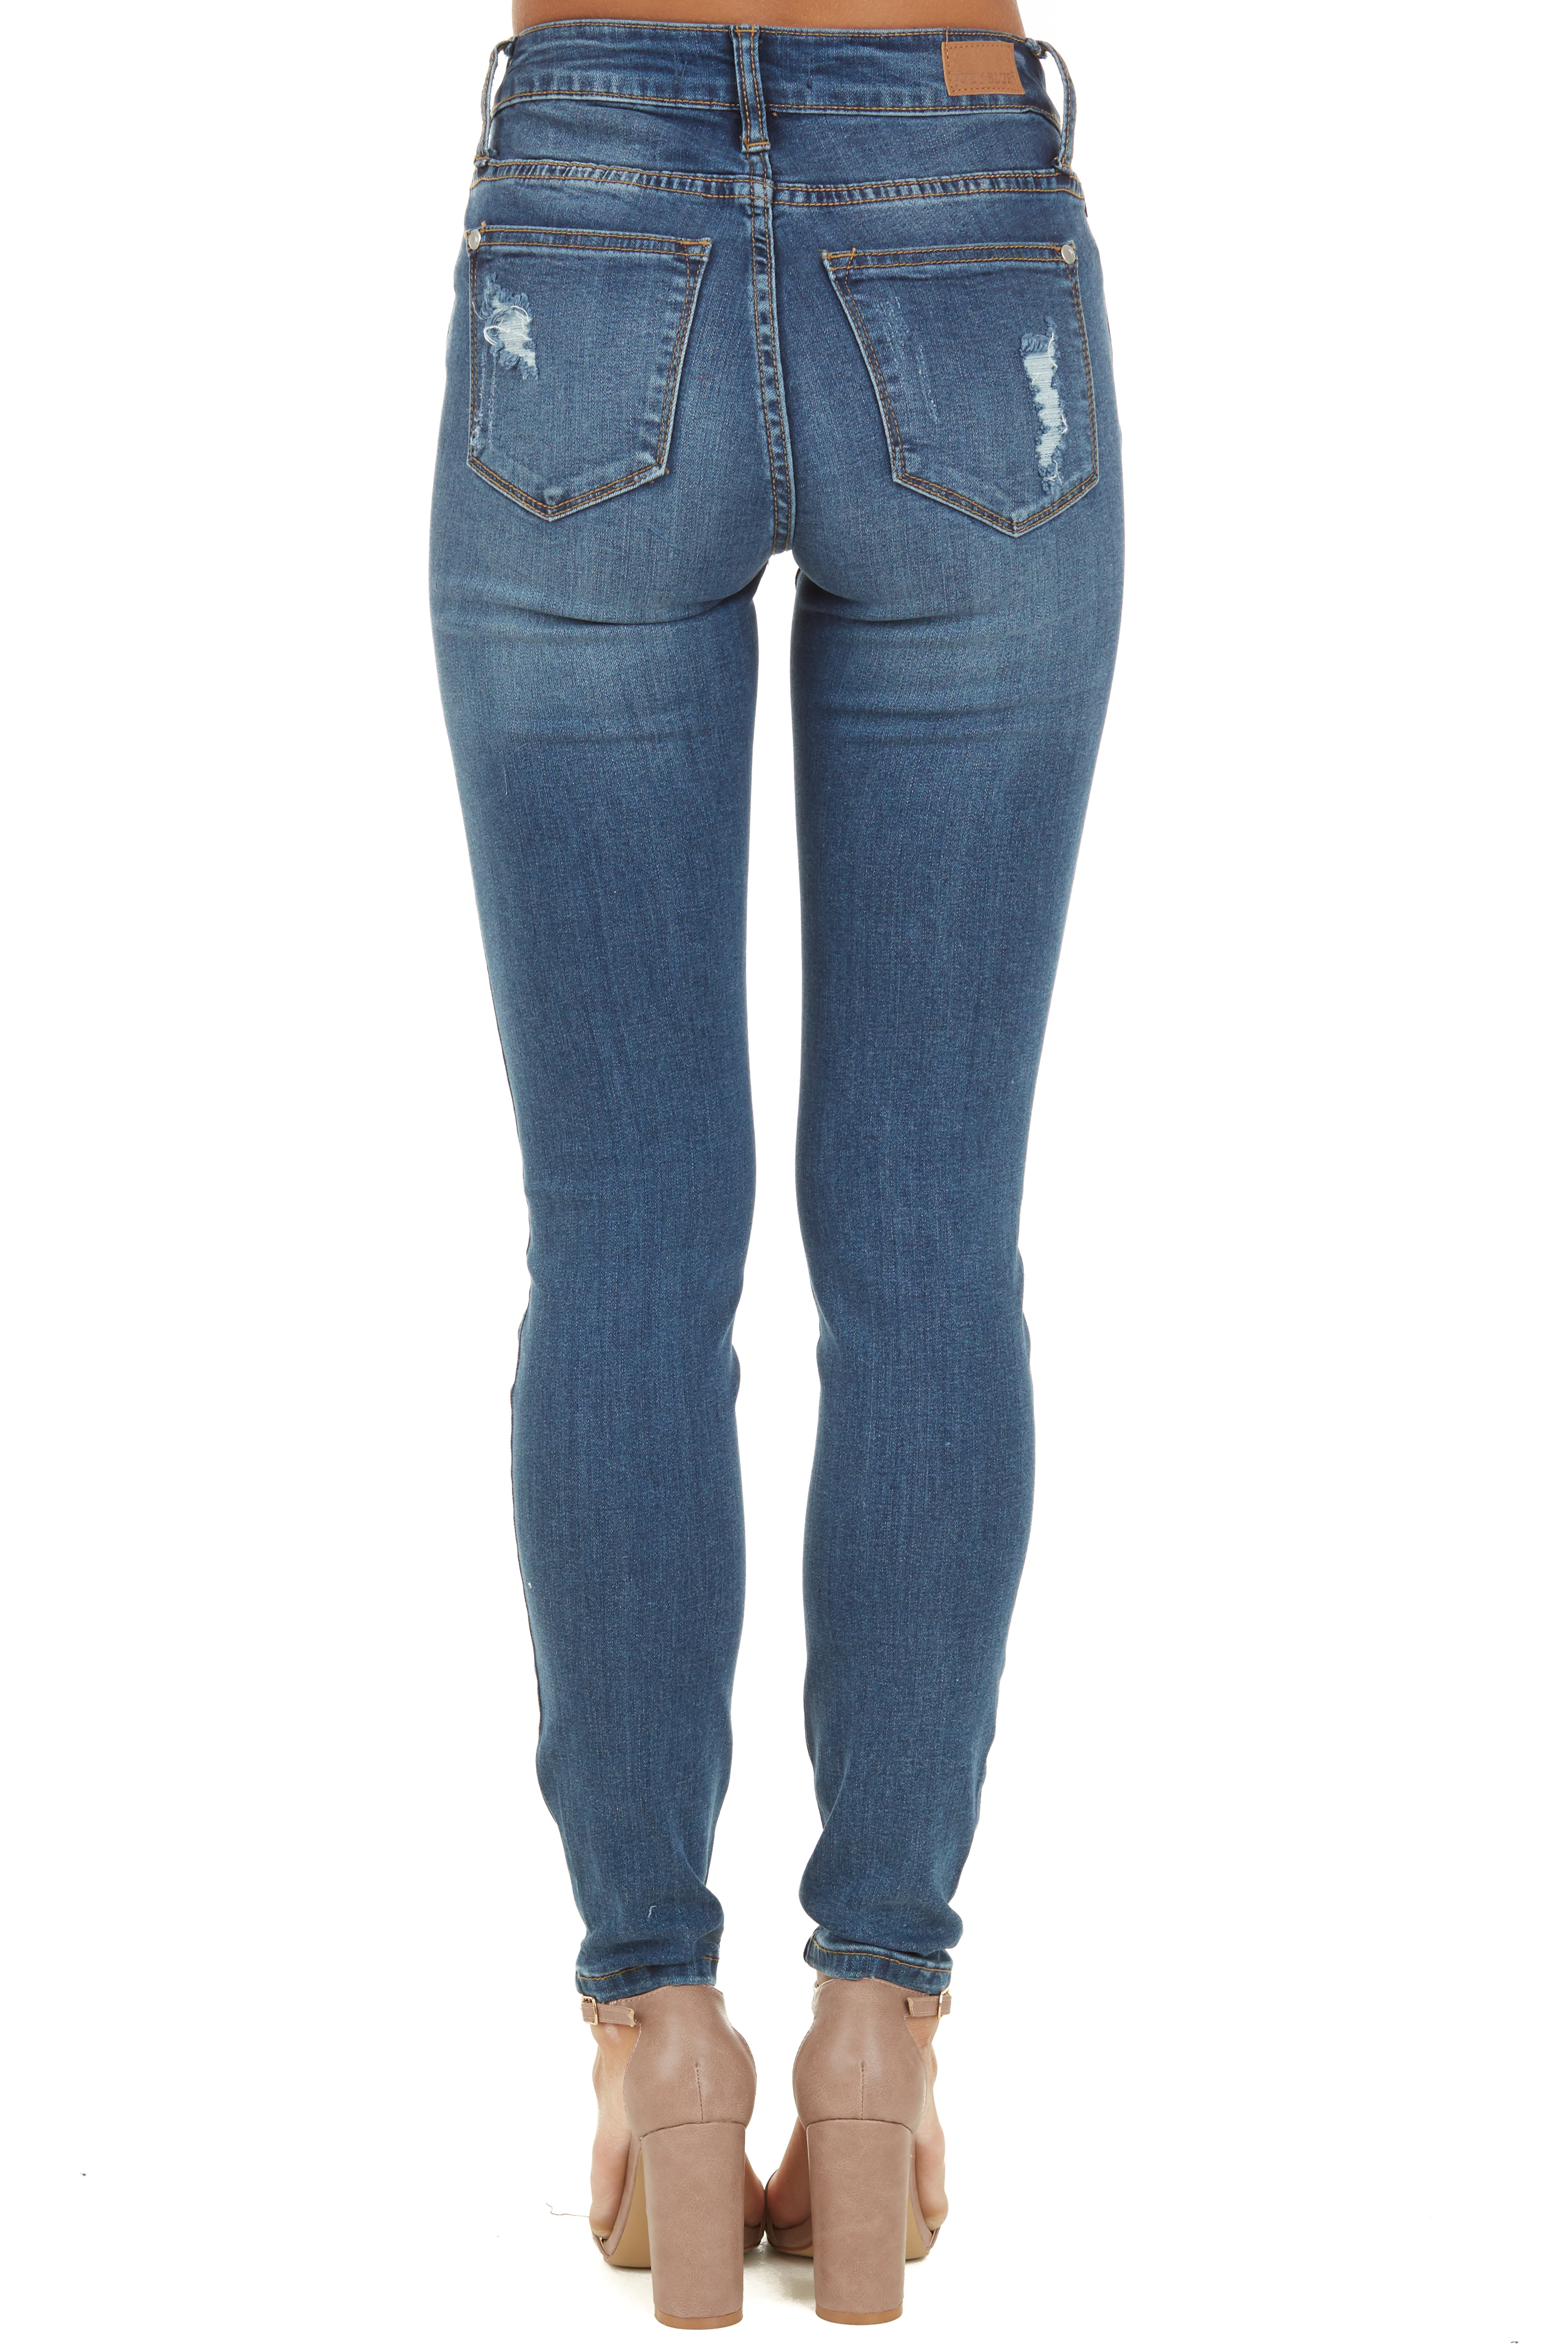 Medium Wash Distressed Skinny Jeans with Lace Details back